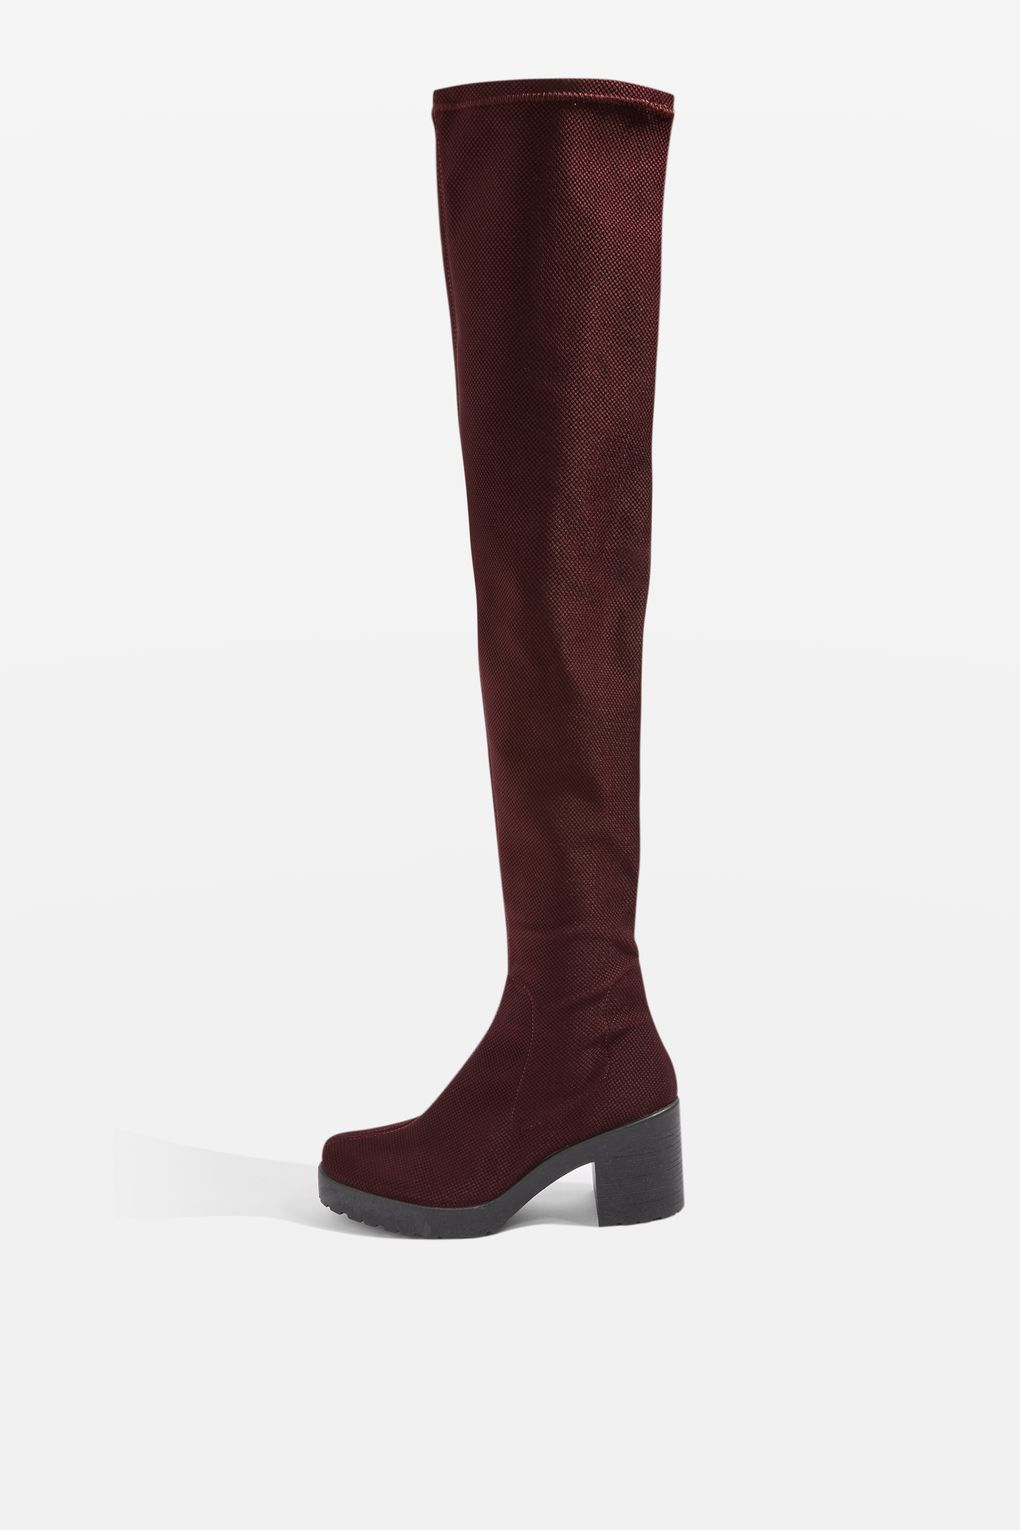 Topshop black knee high boots